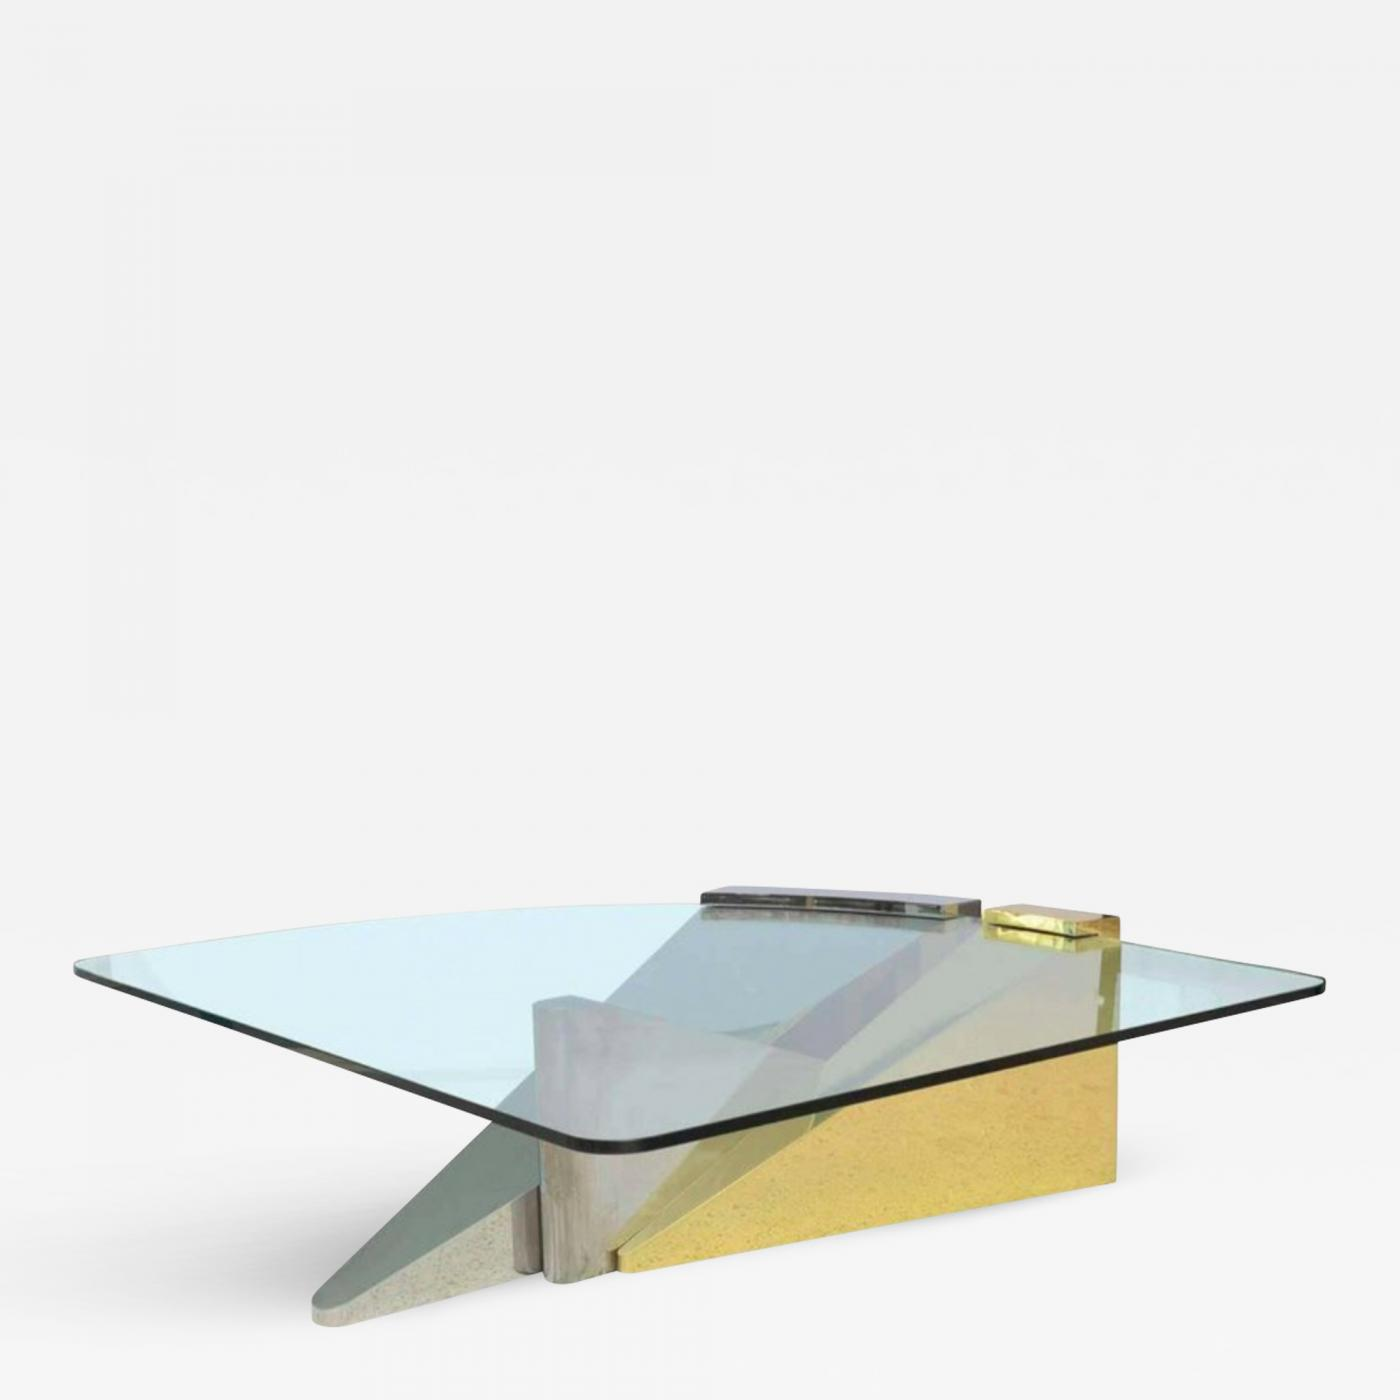 Origami Side Table - Glass/Antique Brass | Muebles y accesorios ... | 1400x1400